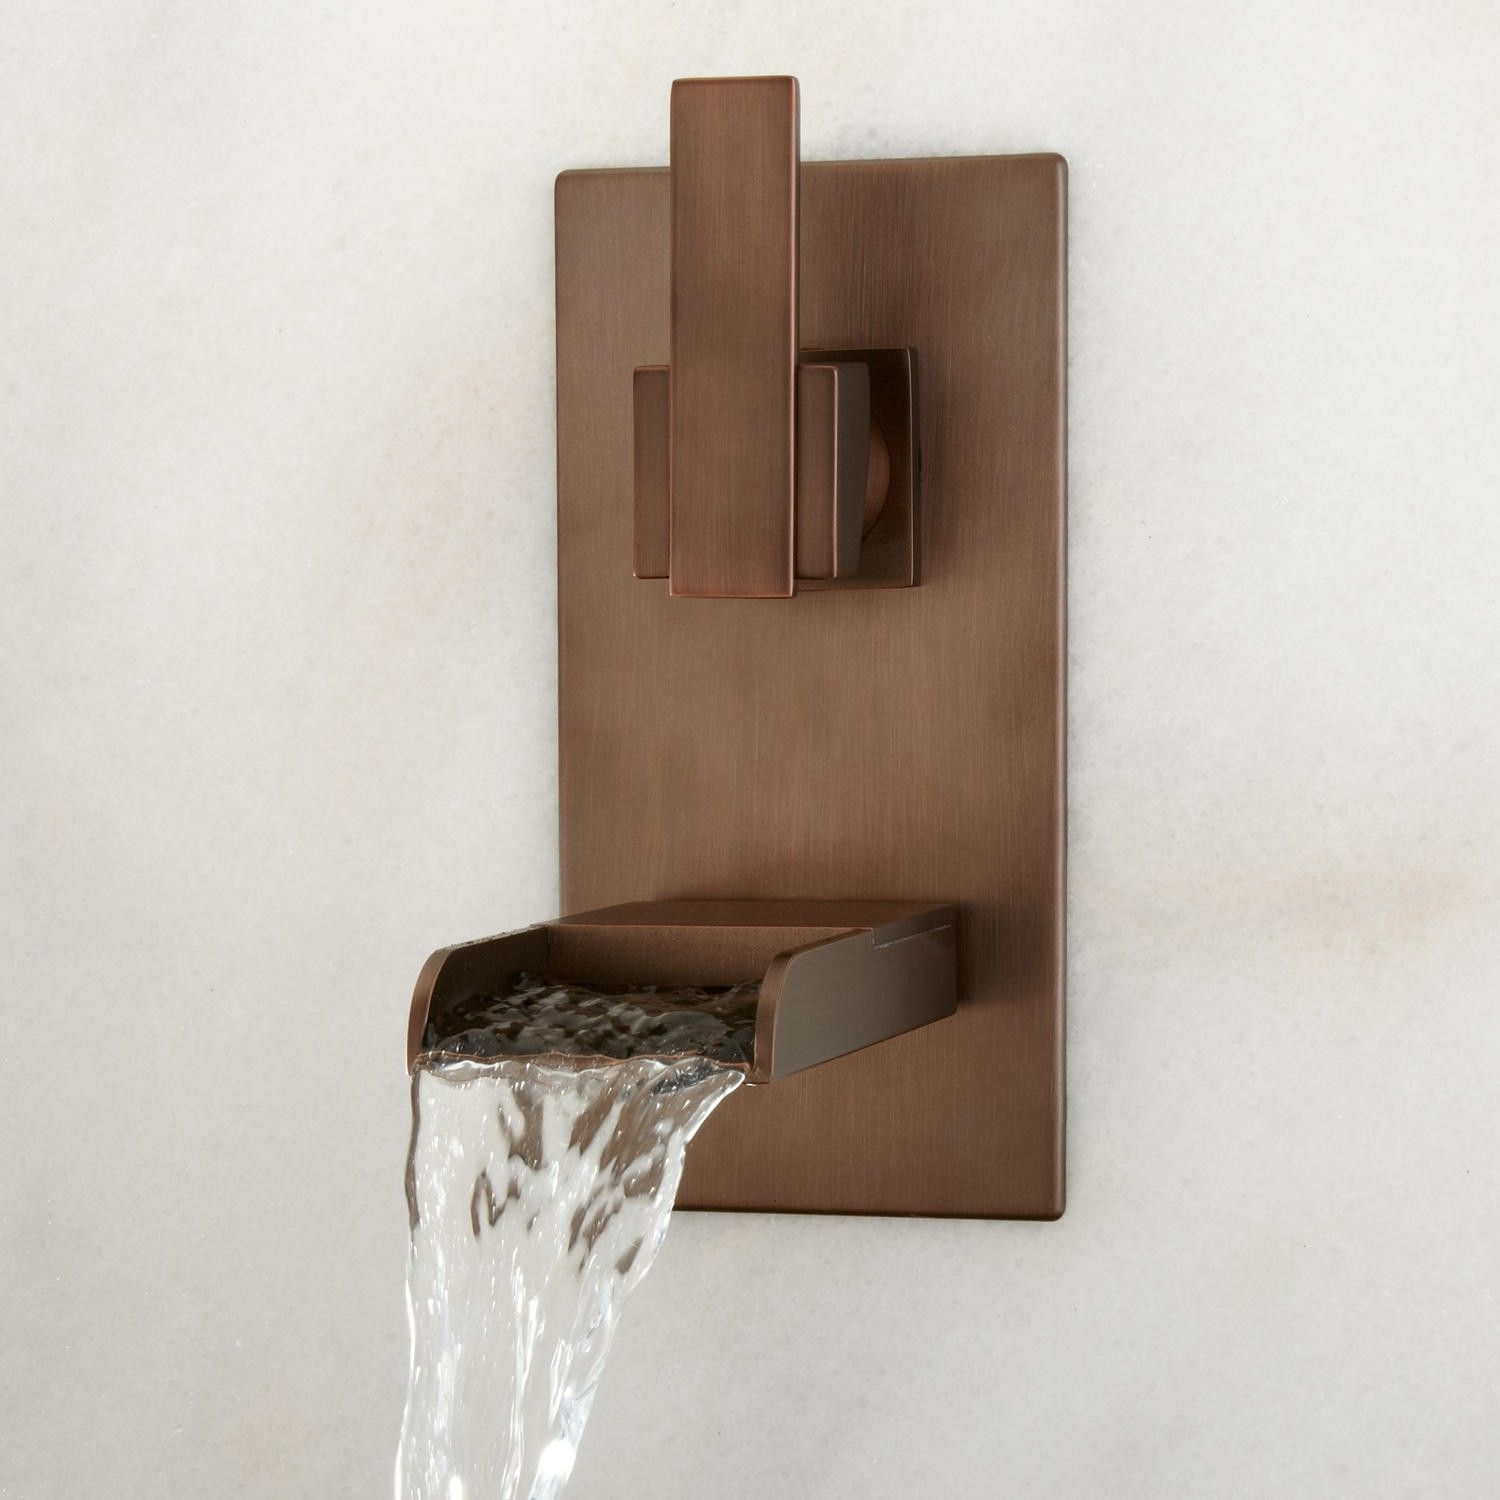 Willis Wall Mount Bathroom Waterfall Faucet Waterfall Faucet